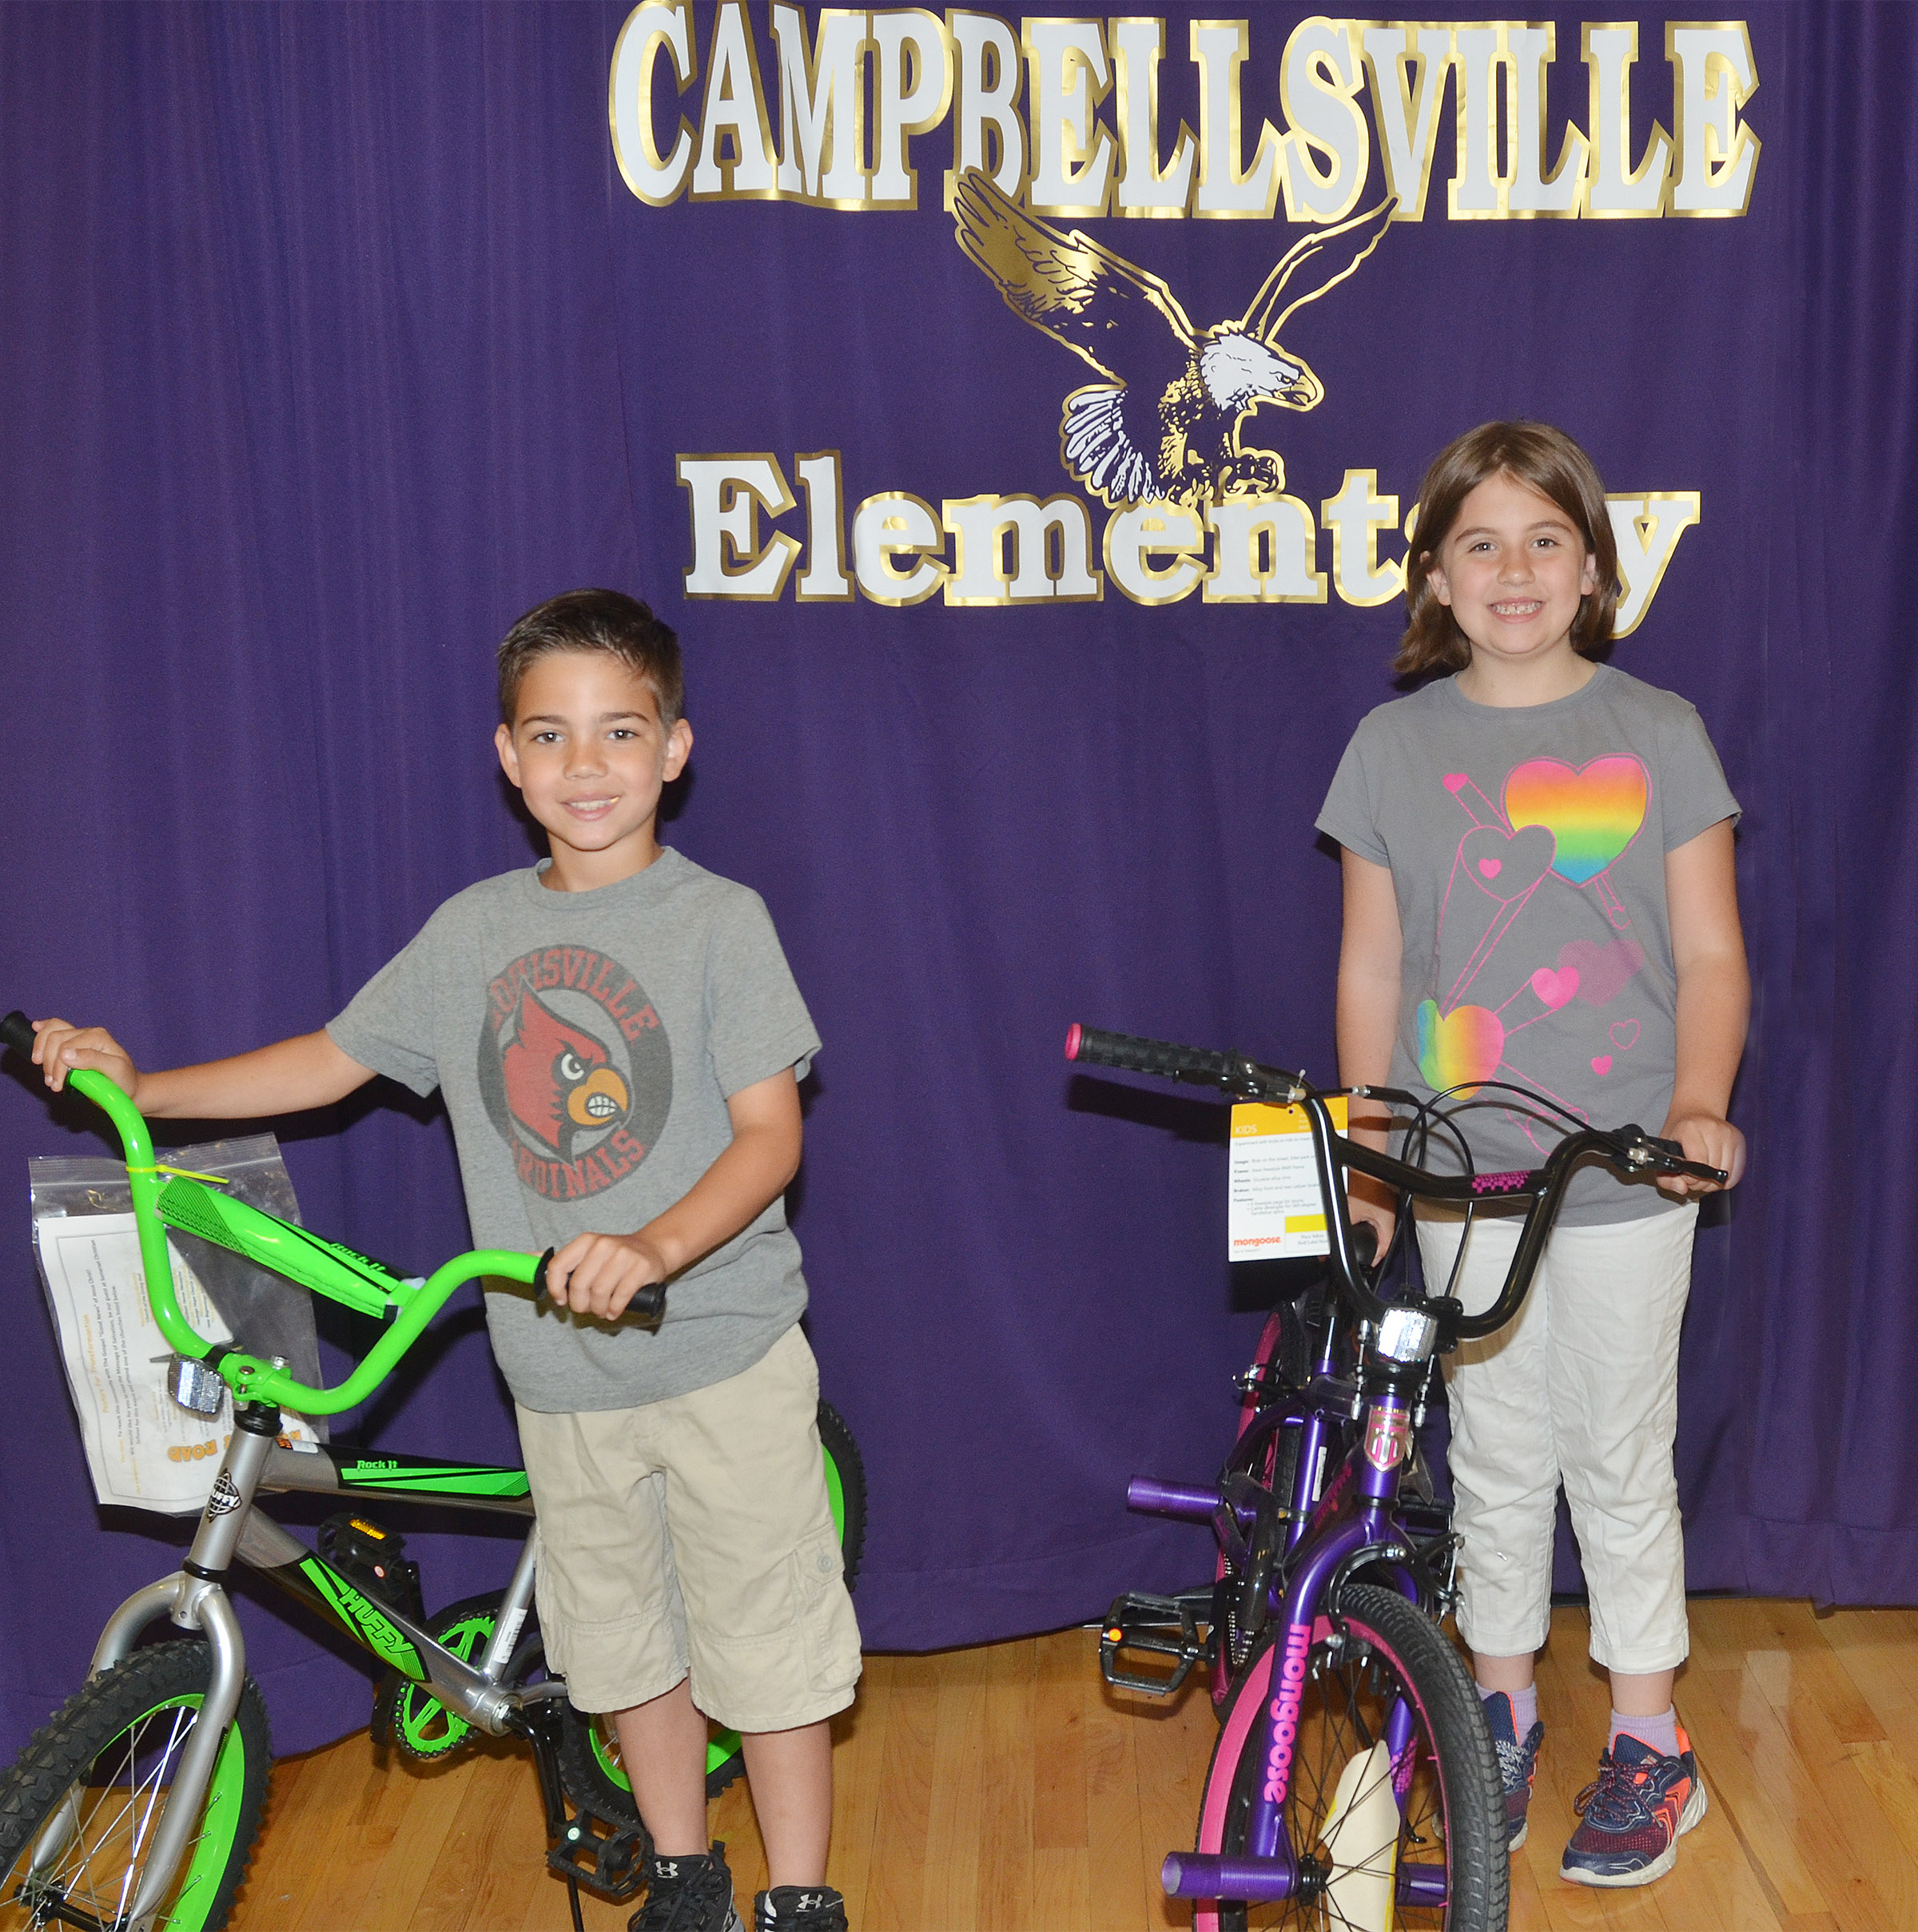 Campbellsville Elementary School third-graders Easton Williams, at left, and Adrianna Garvin have received bicycles for having perfect attendance this school year. Pitman Masonic Lodge #124 F&AM members in Campbellsville donated the bicycles.